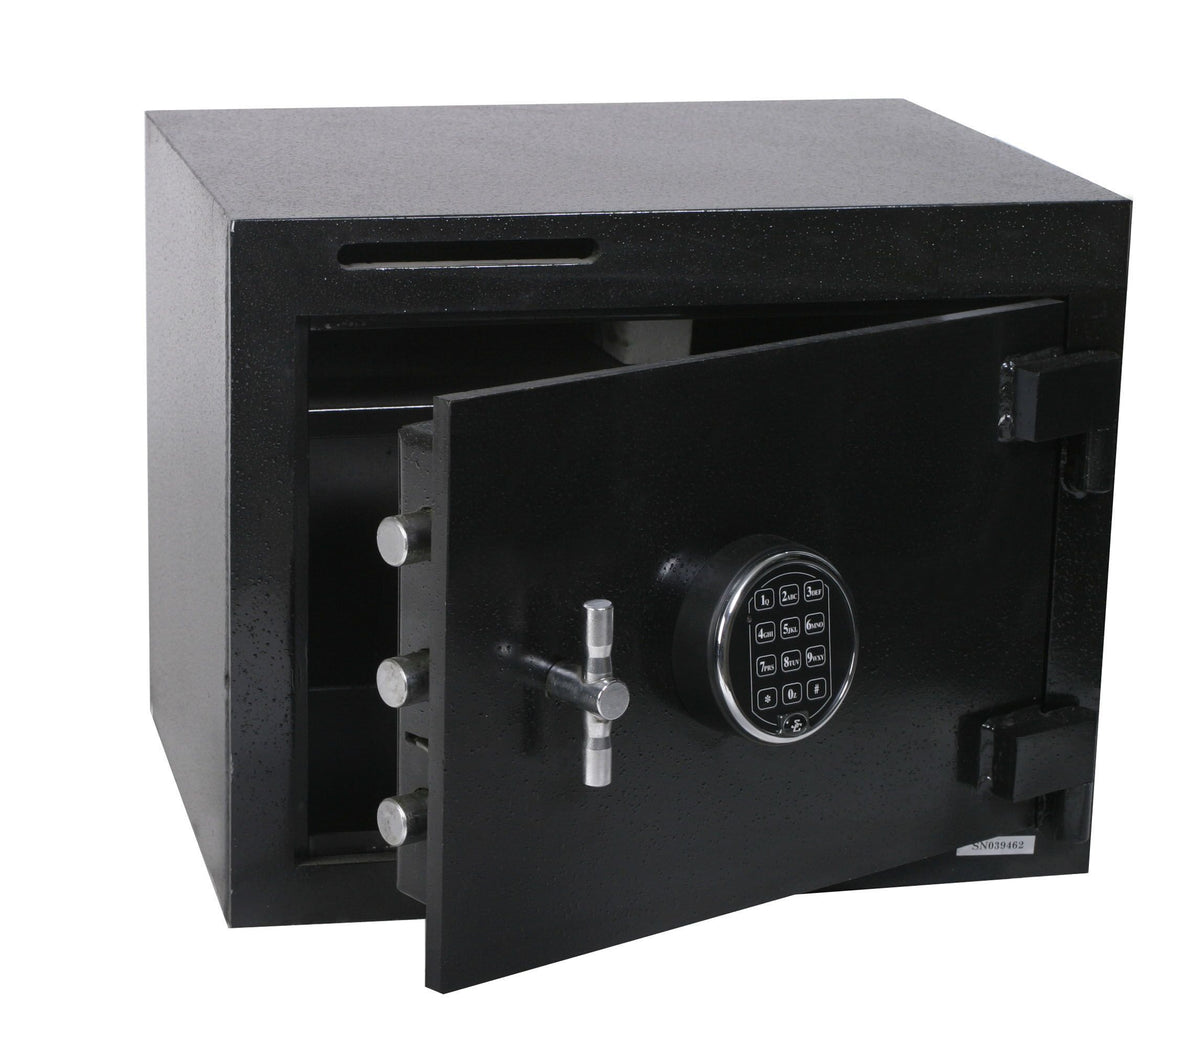 FireKing B1519S-FK1 Deposit Slot Safe